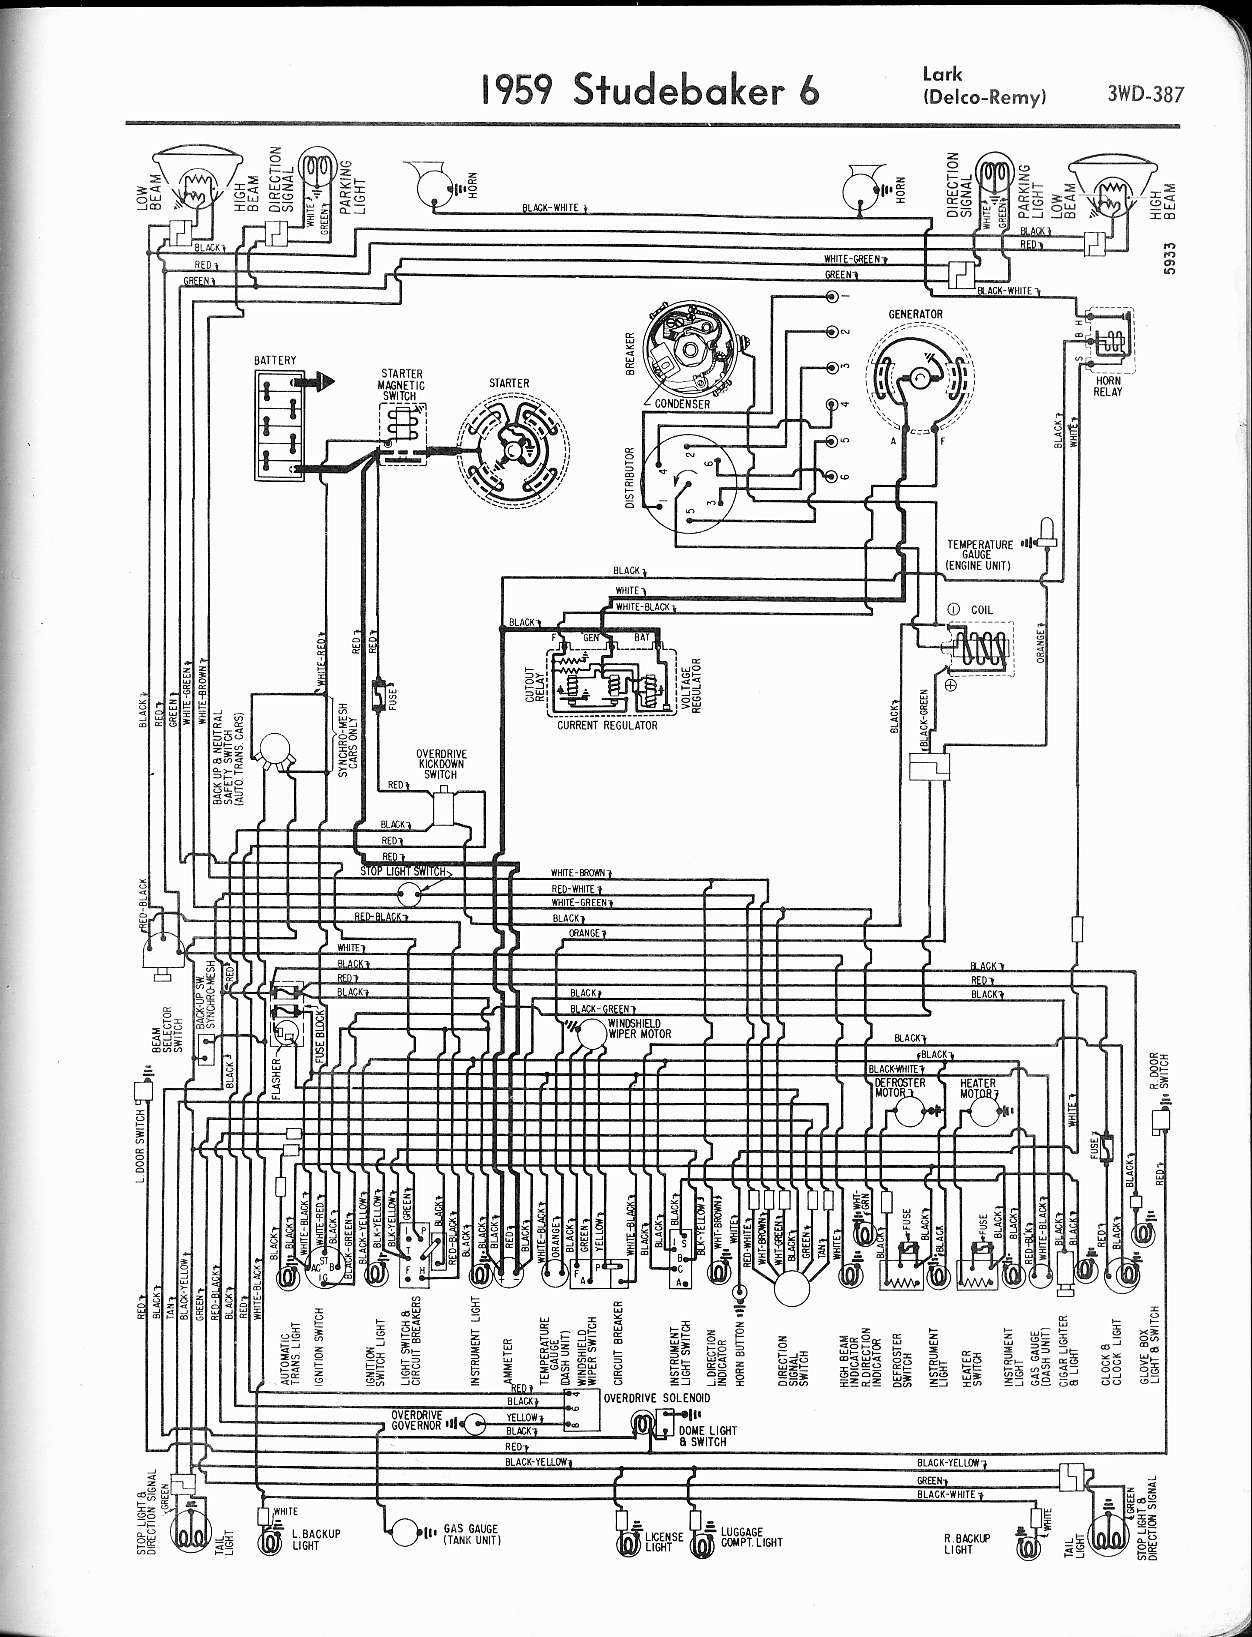 studebaker wiring diagrams the old car manual project rh oldcarmanualproject com Electric Club Car Wiring Diagram Simple Car Wiring Diagram